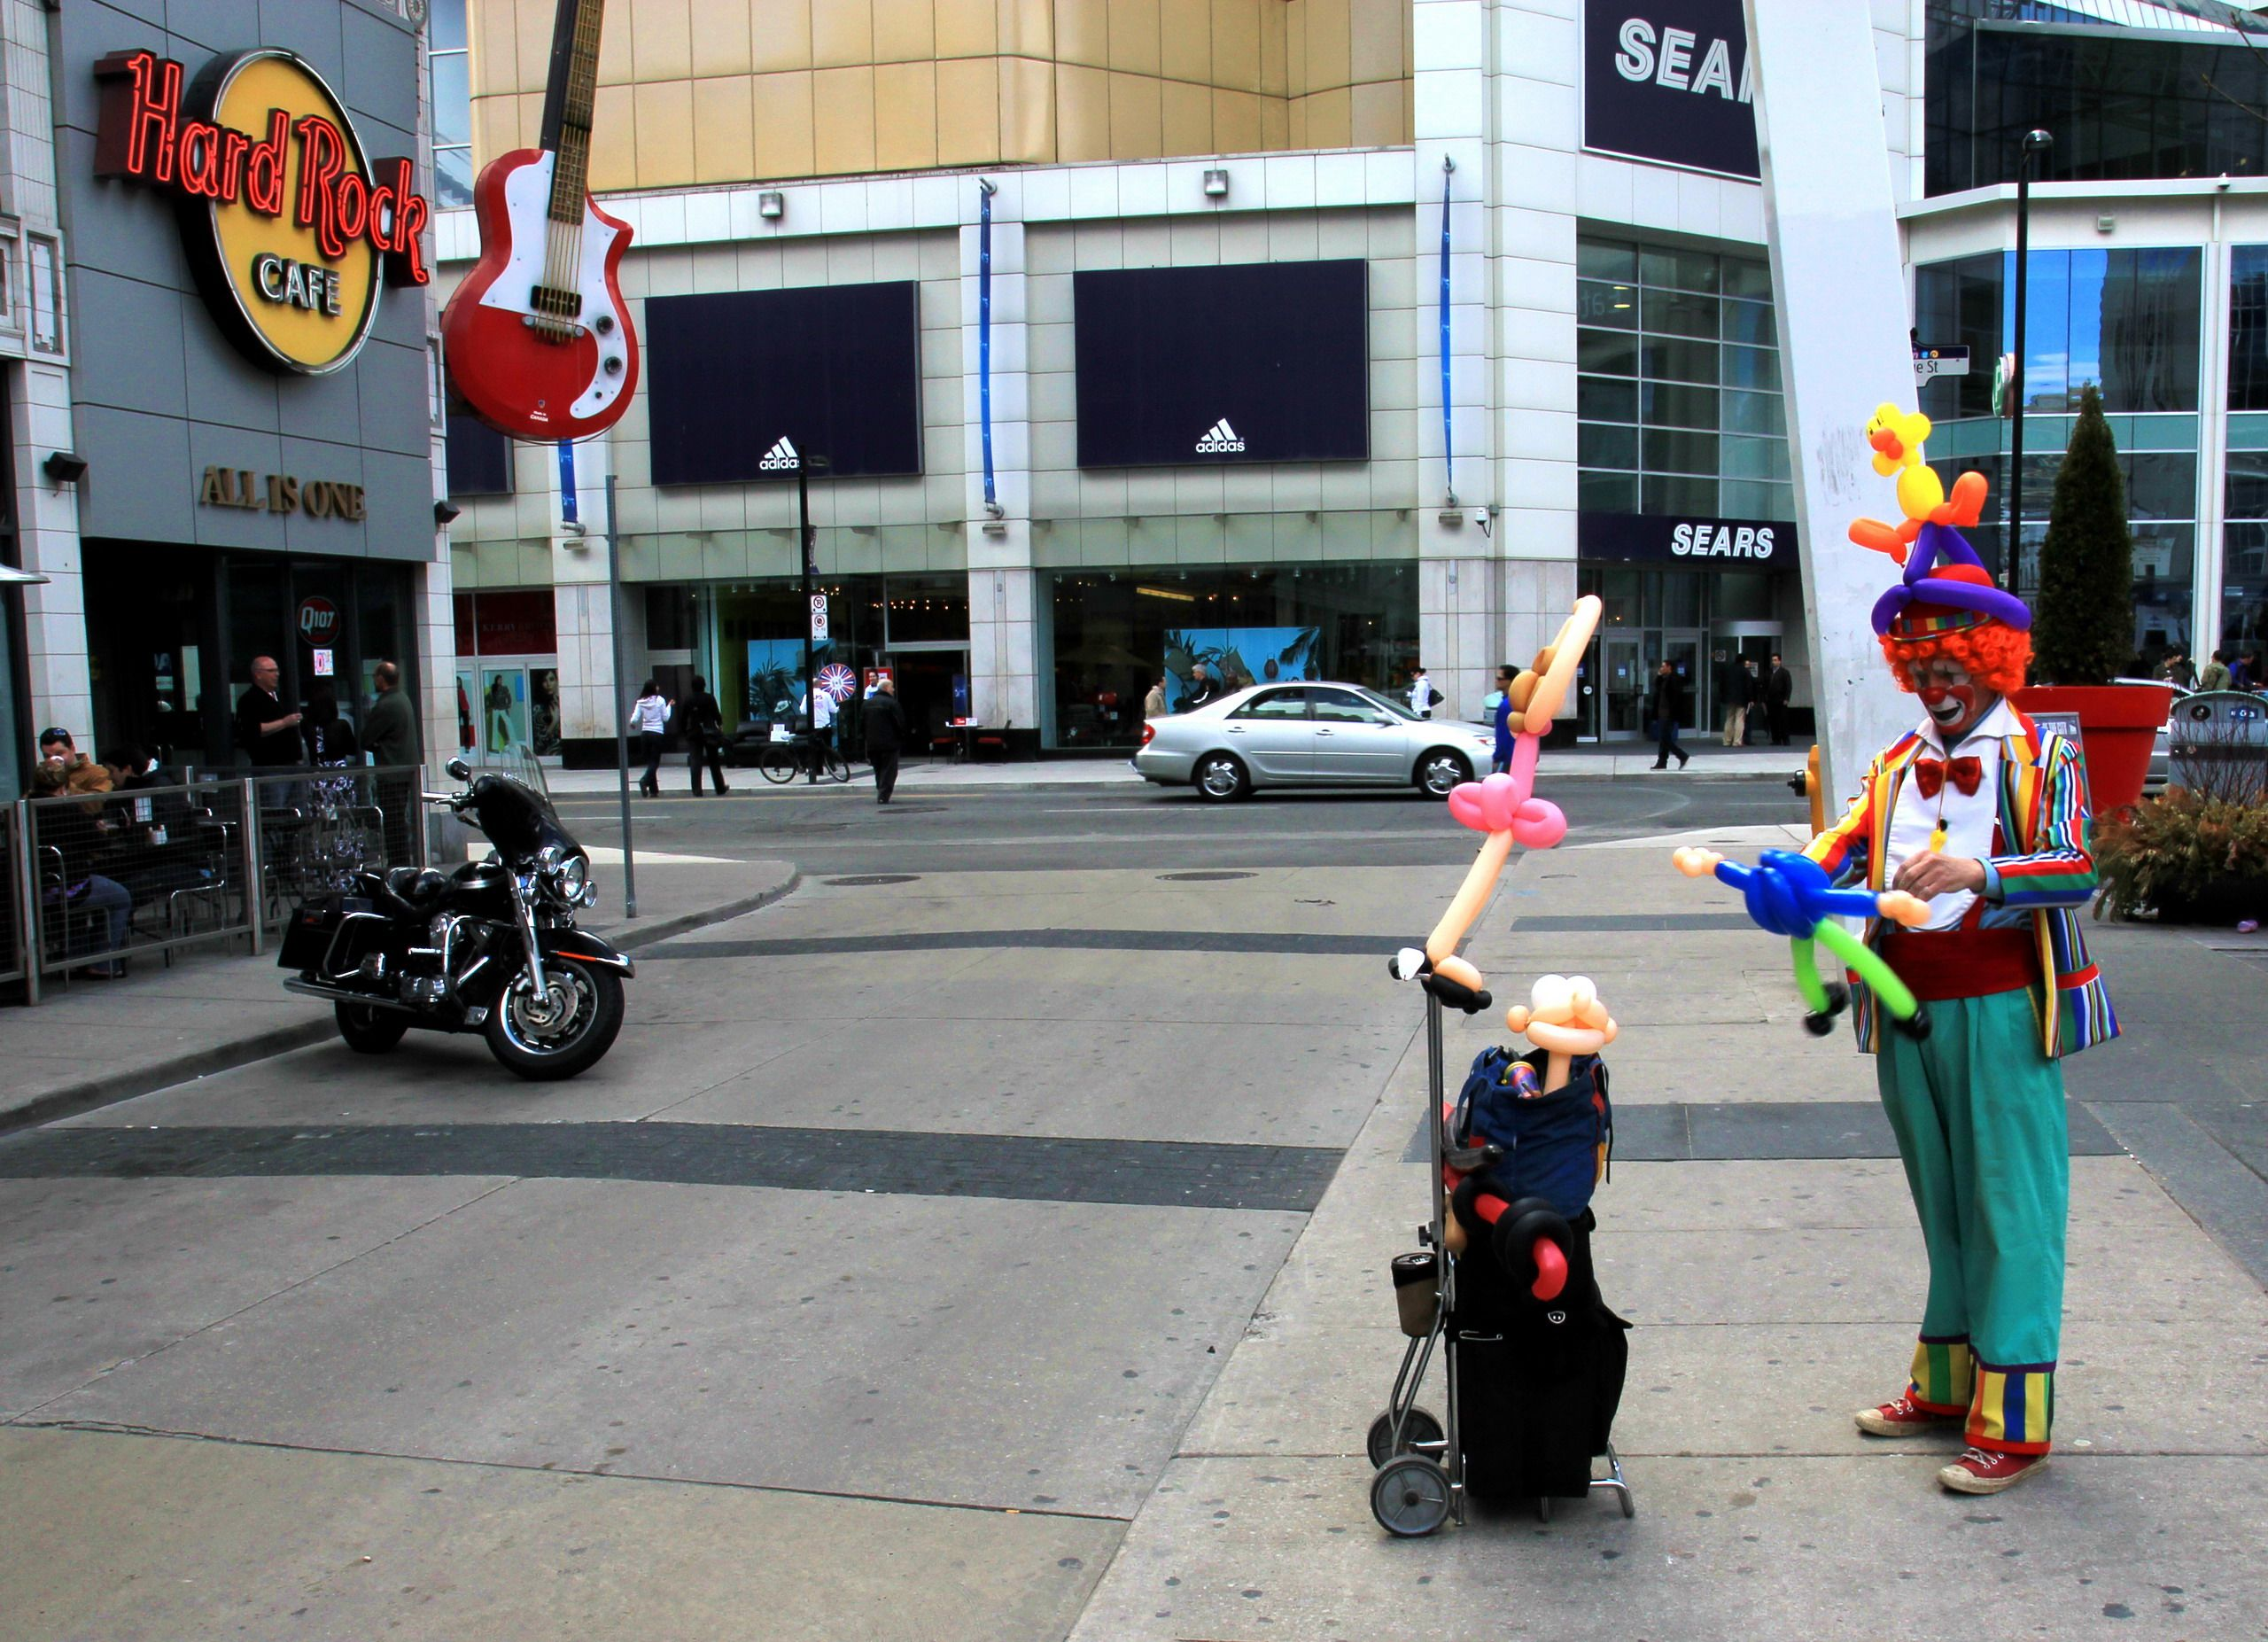 yonge dundas square filled with cups - Google Search | 5 | Pinterest